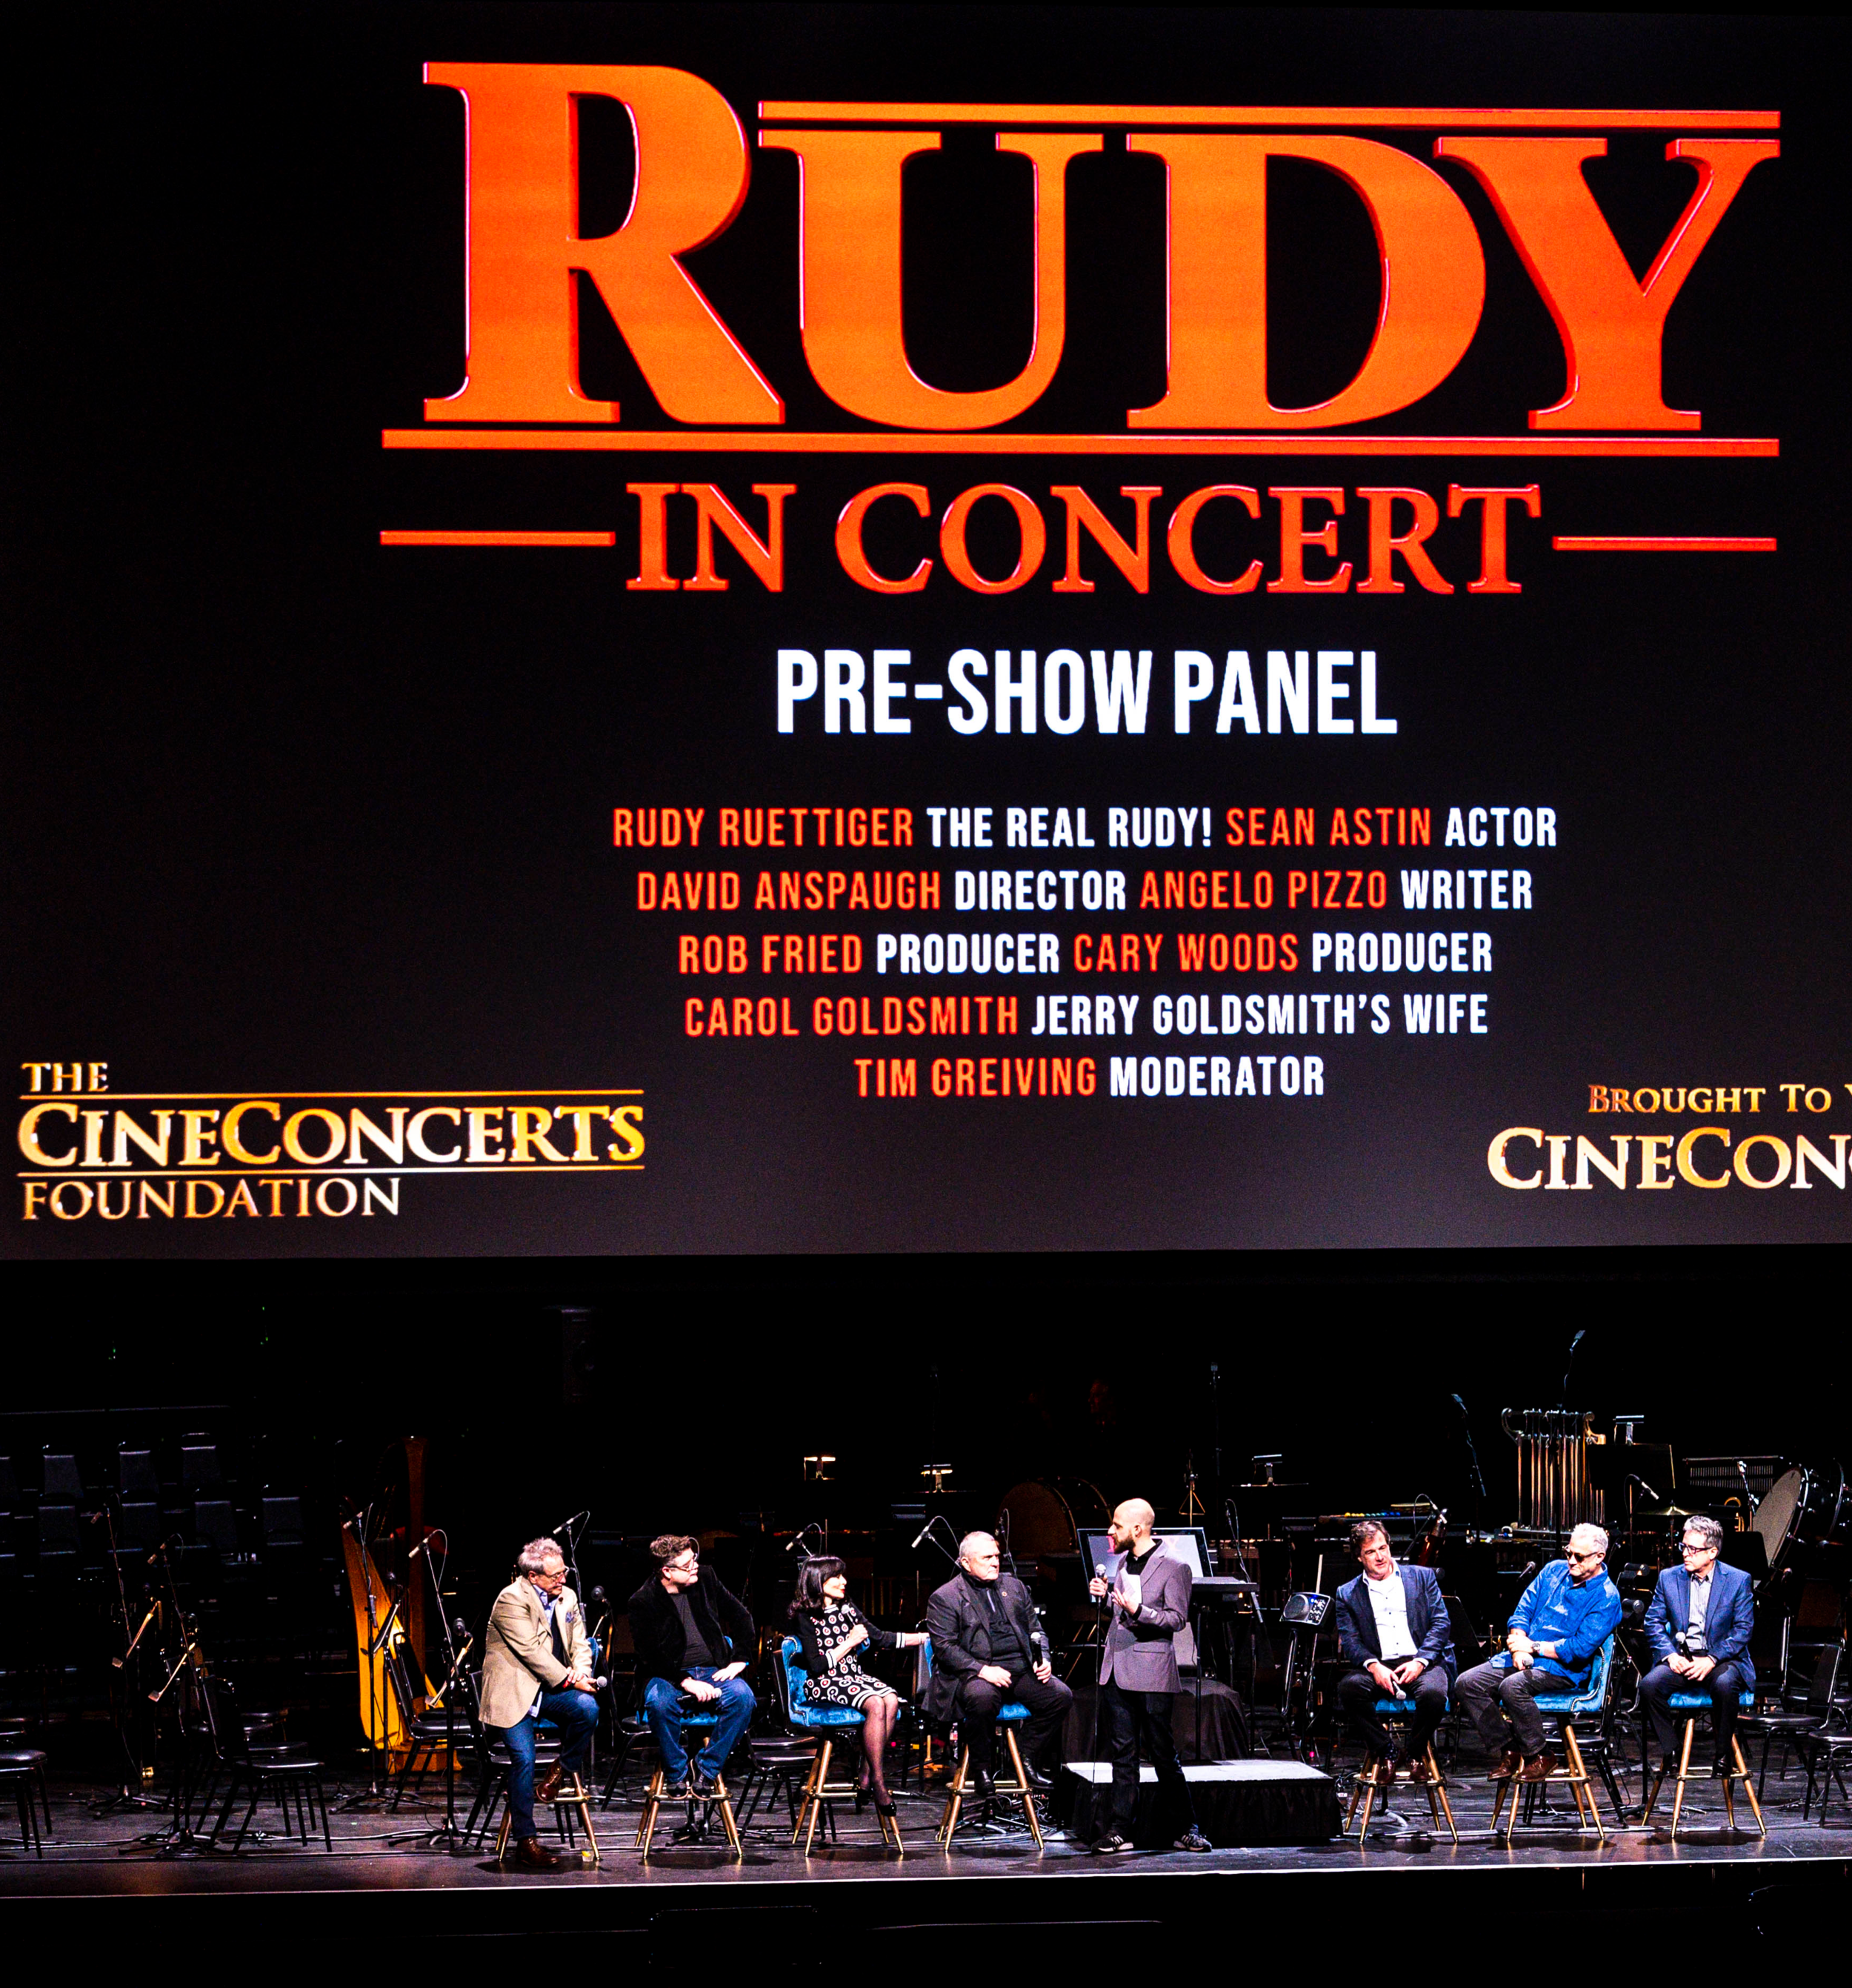 Rudy in Concert - On March 30, 2019, The CineConcerts Foundation in partnership with CineConcerts kicked off its first charitable film concert: Rudy in Concert.Among the attendees were over 1,000 children, families and nonprofit staff who received free ticket donations. The CineConcerts Foundation reached out to over 50 organizations across Southern California, including Create Now, Harmony Project and the L.A. Phil Assn.